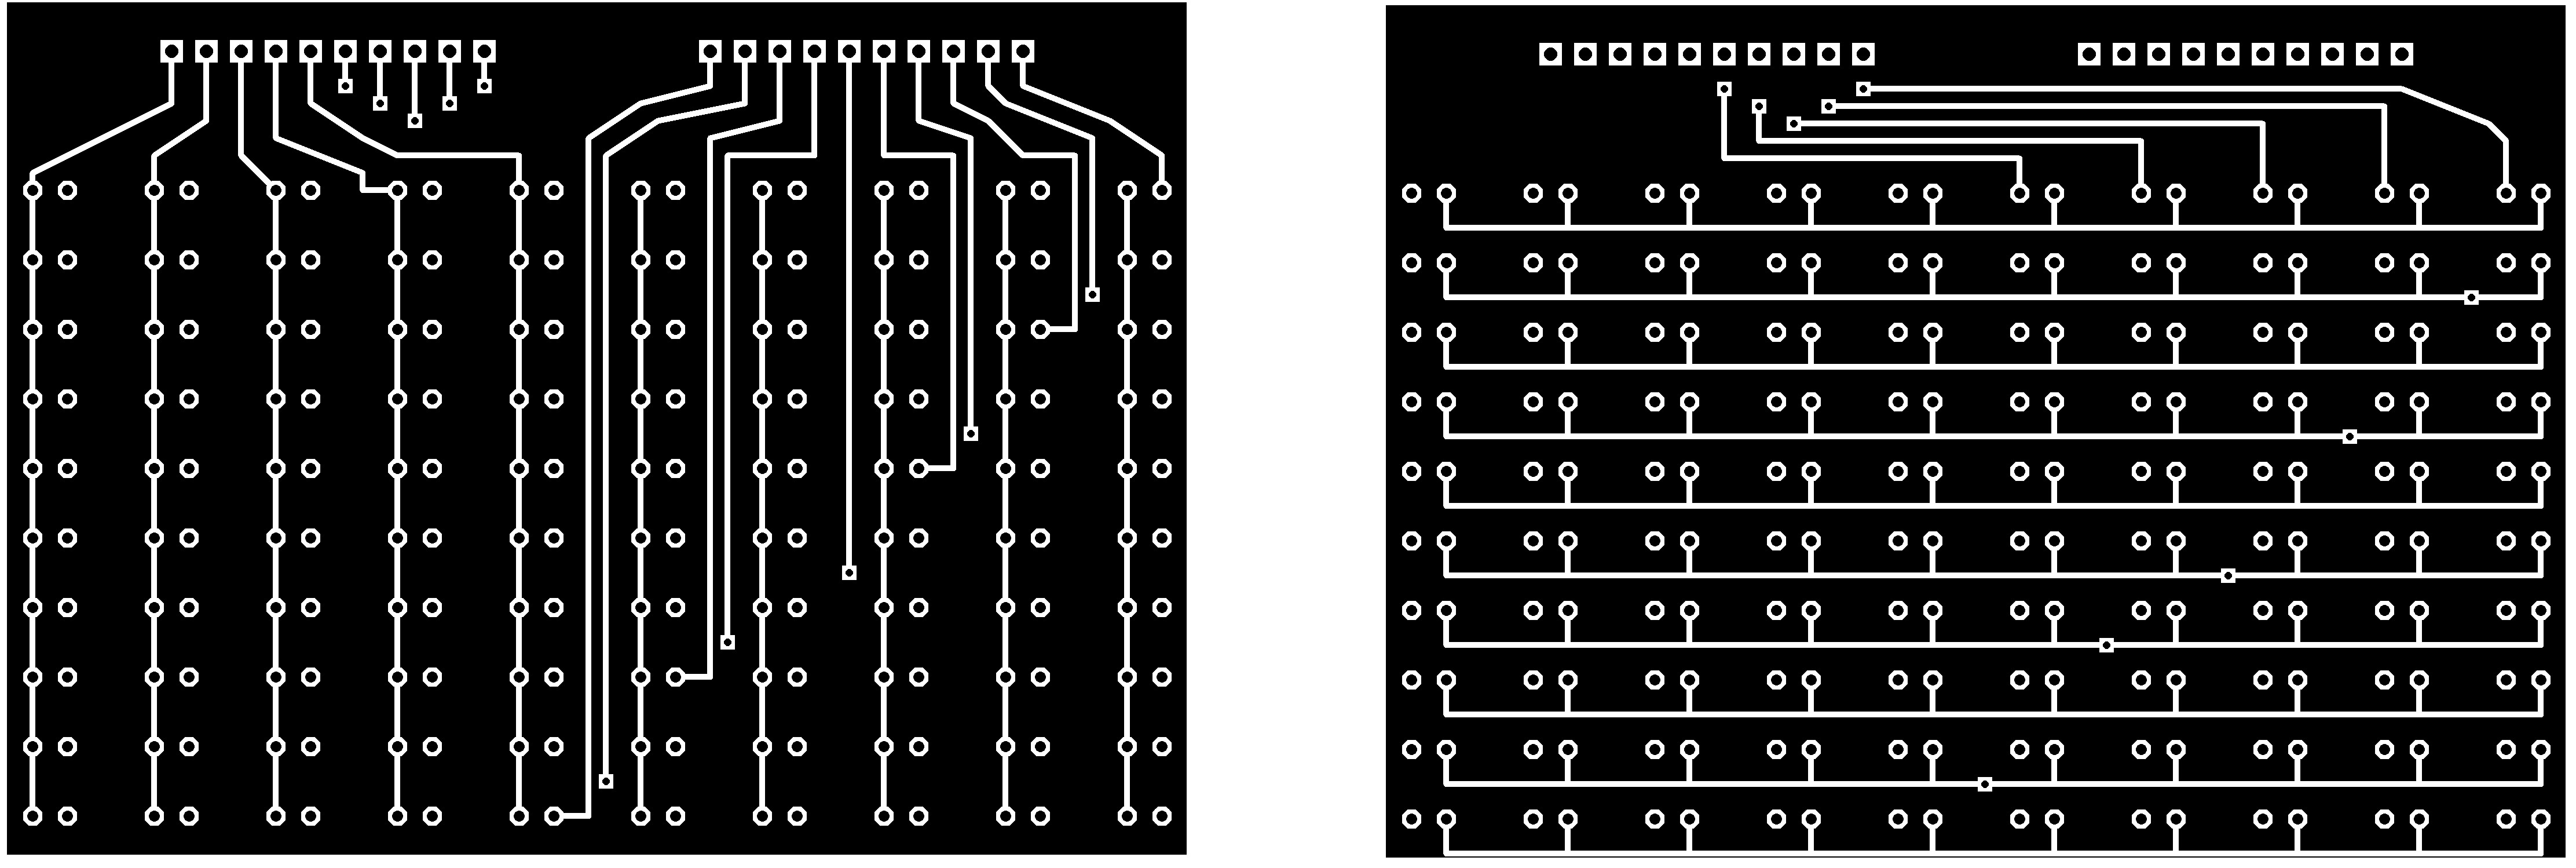 Index Smallledcircuitboardjpg The Merged Top And Bottom Layer Of Pcb With Leds Is Shown Below Connectors X Y In Schematic Electrical Signal Need To Be